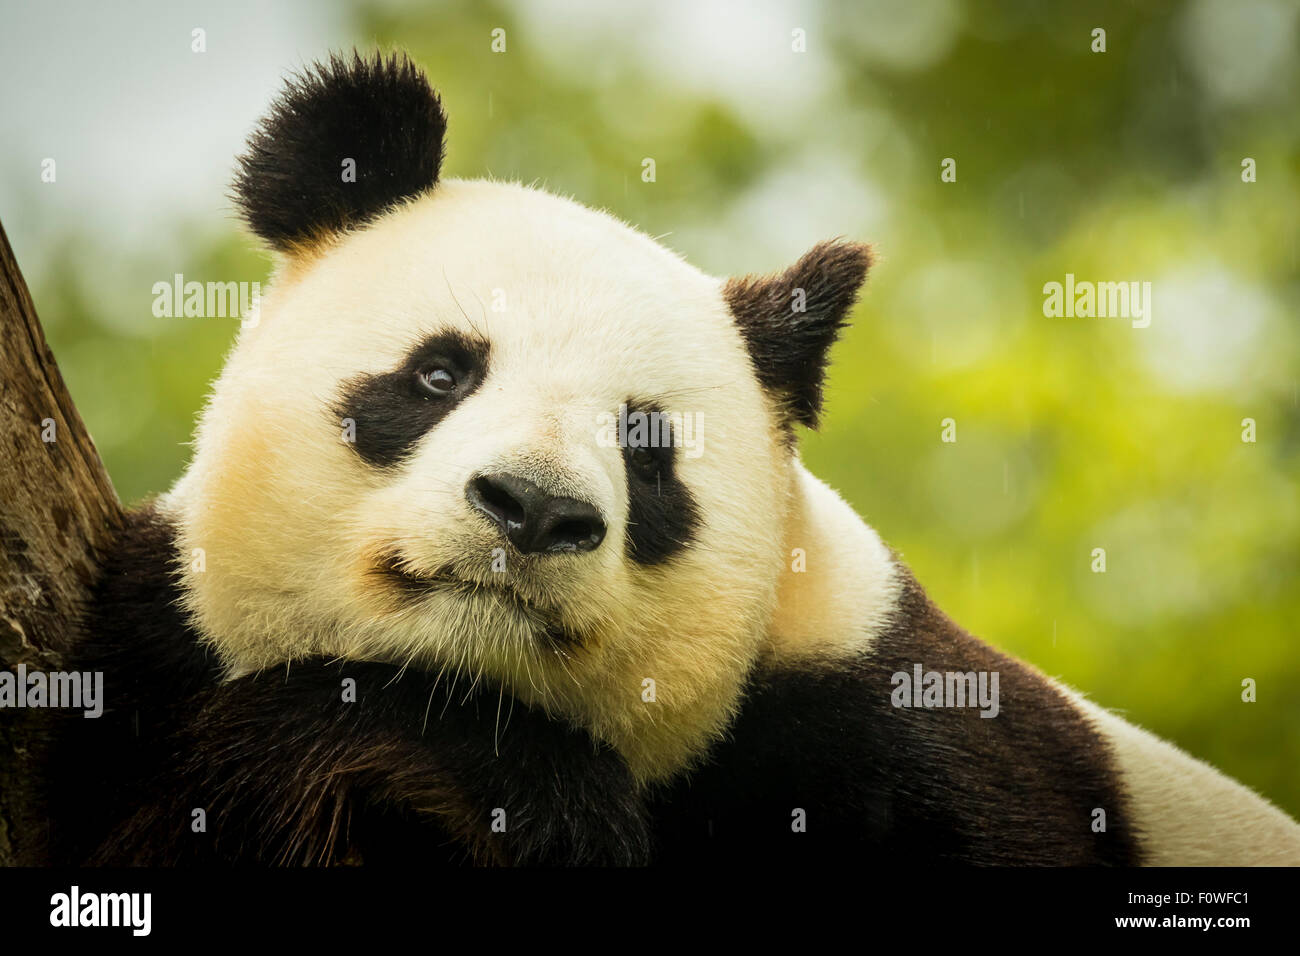 Giant panda bear falls asleep during the rain in a forest after eating bamboo Stock Photo